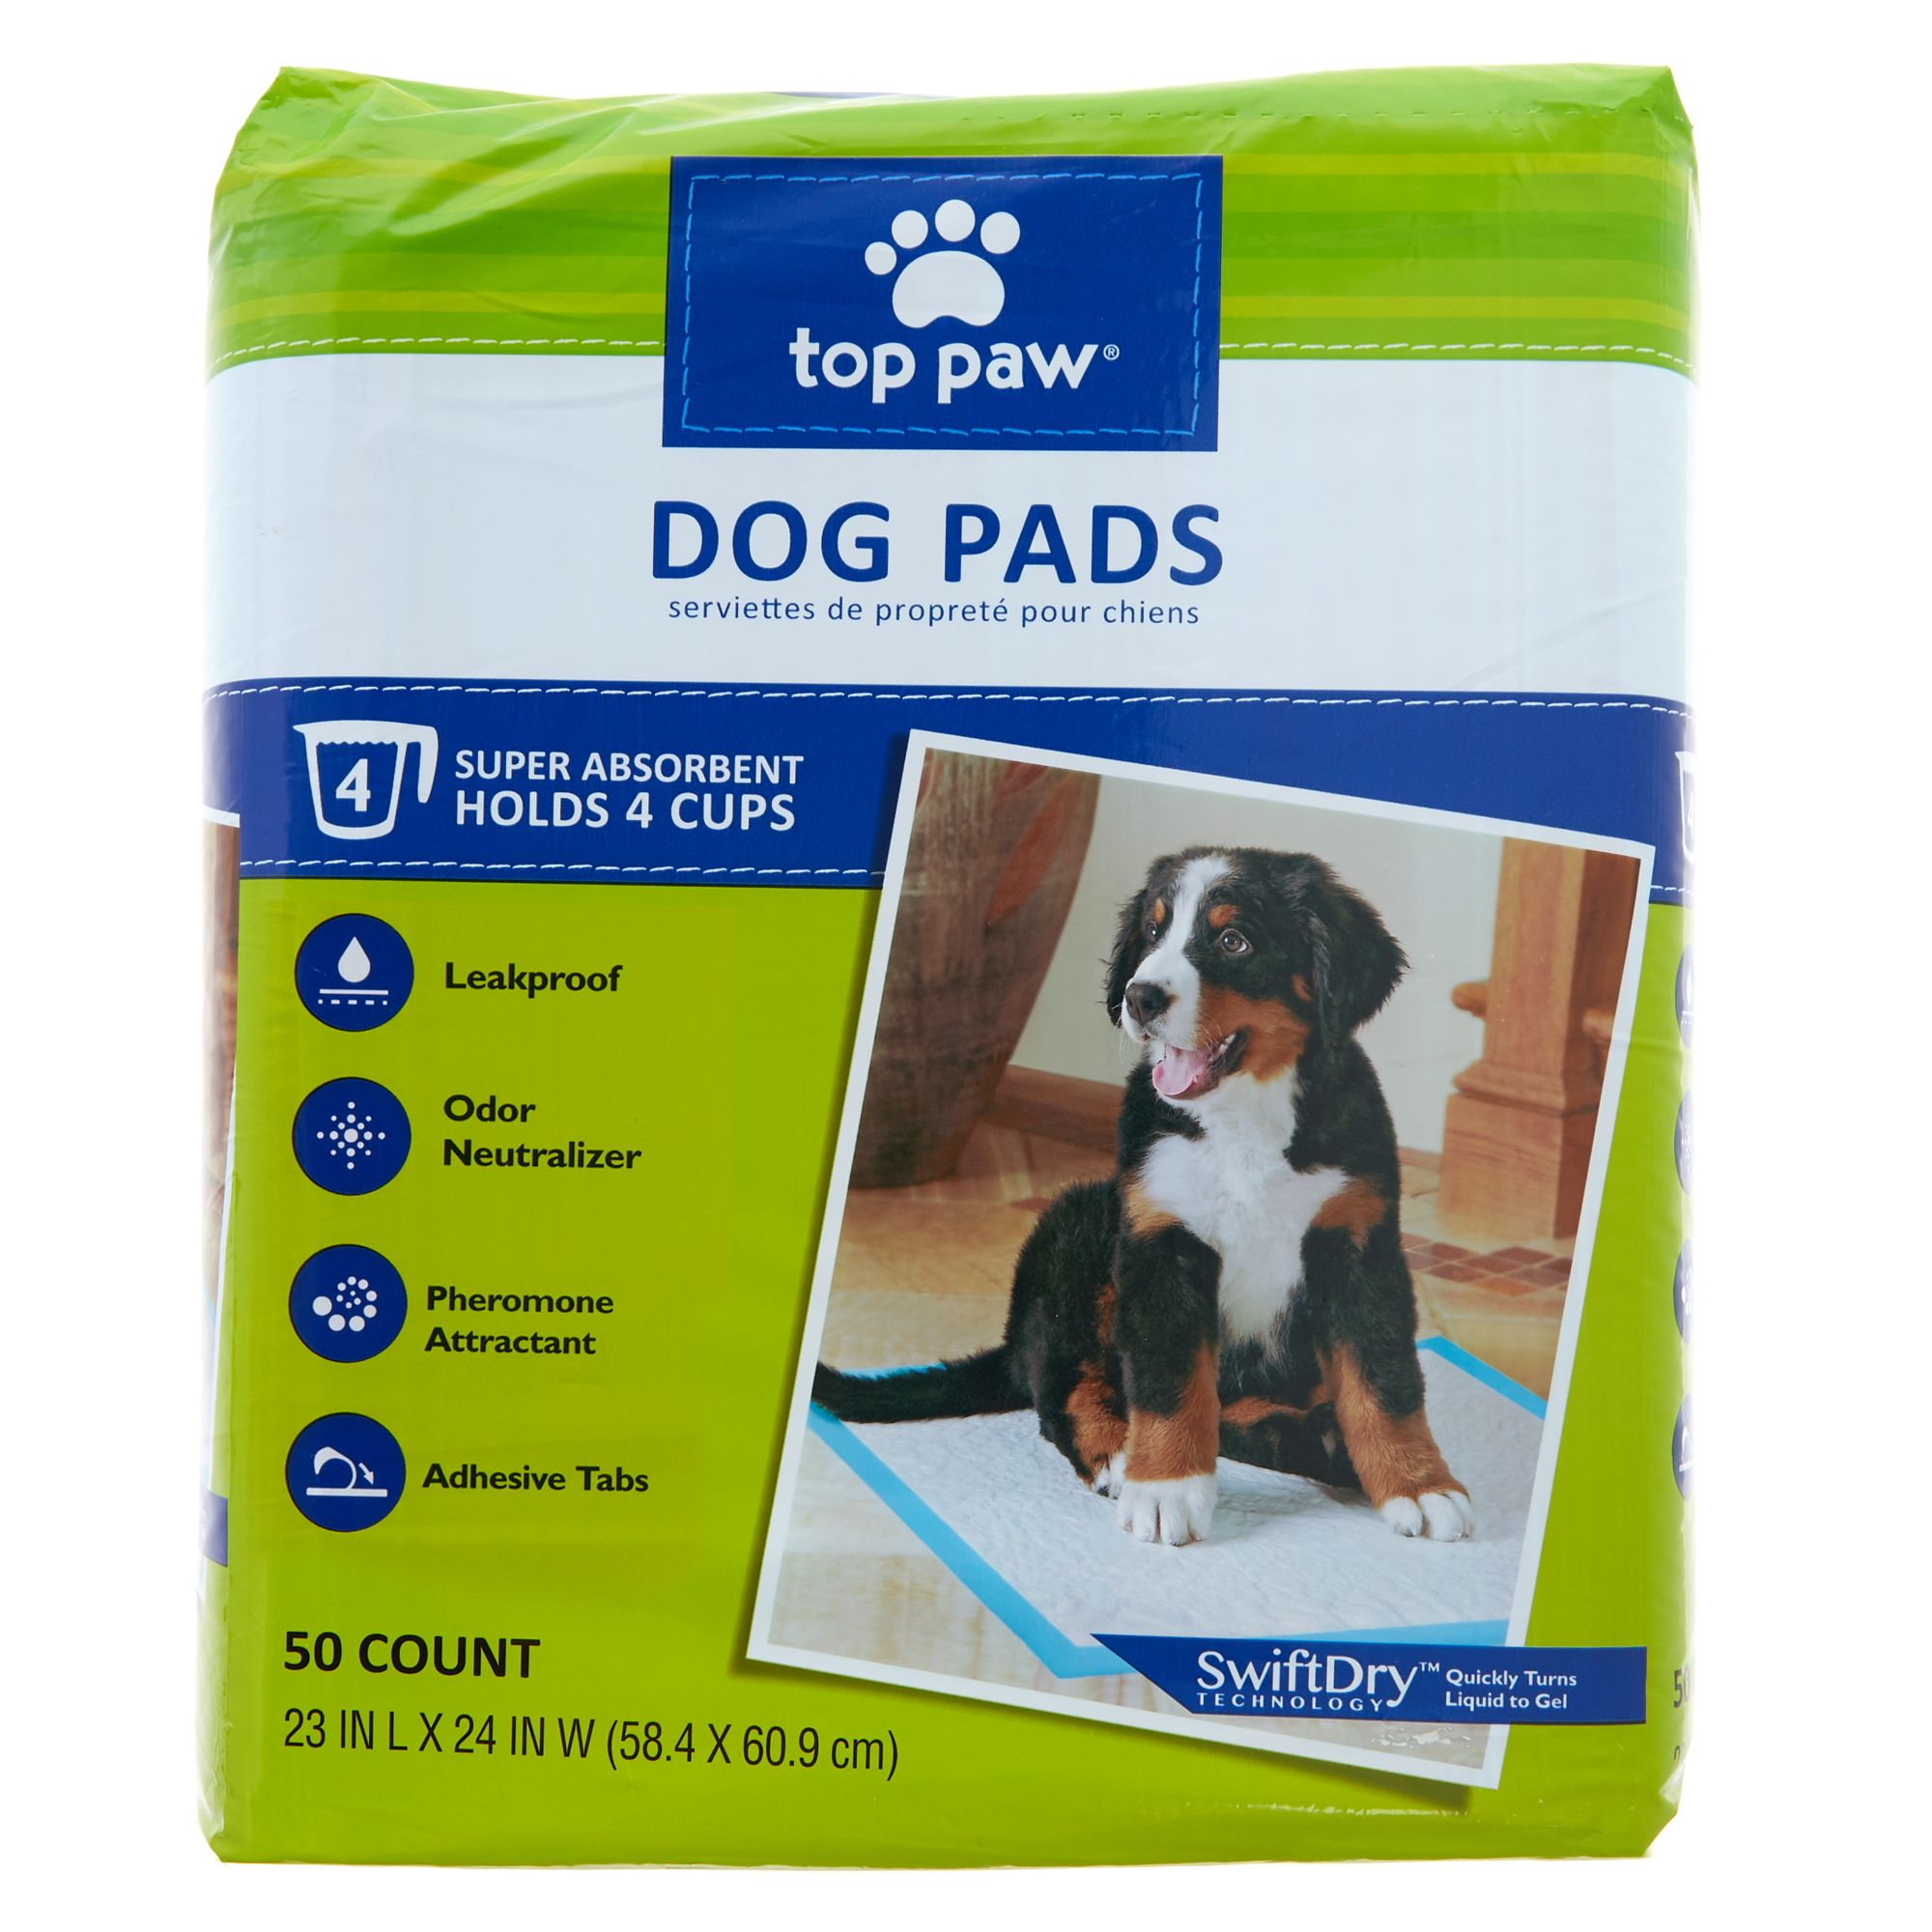 Top Paw Dog Pads size: 50 Count 5270582